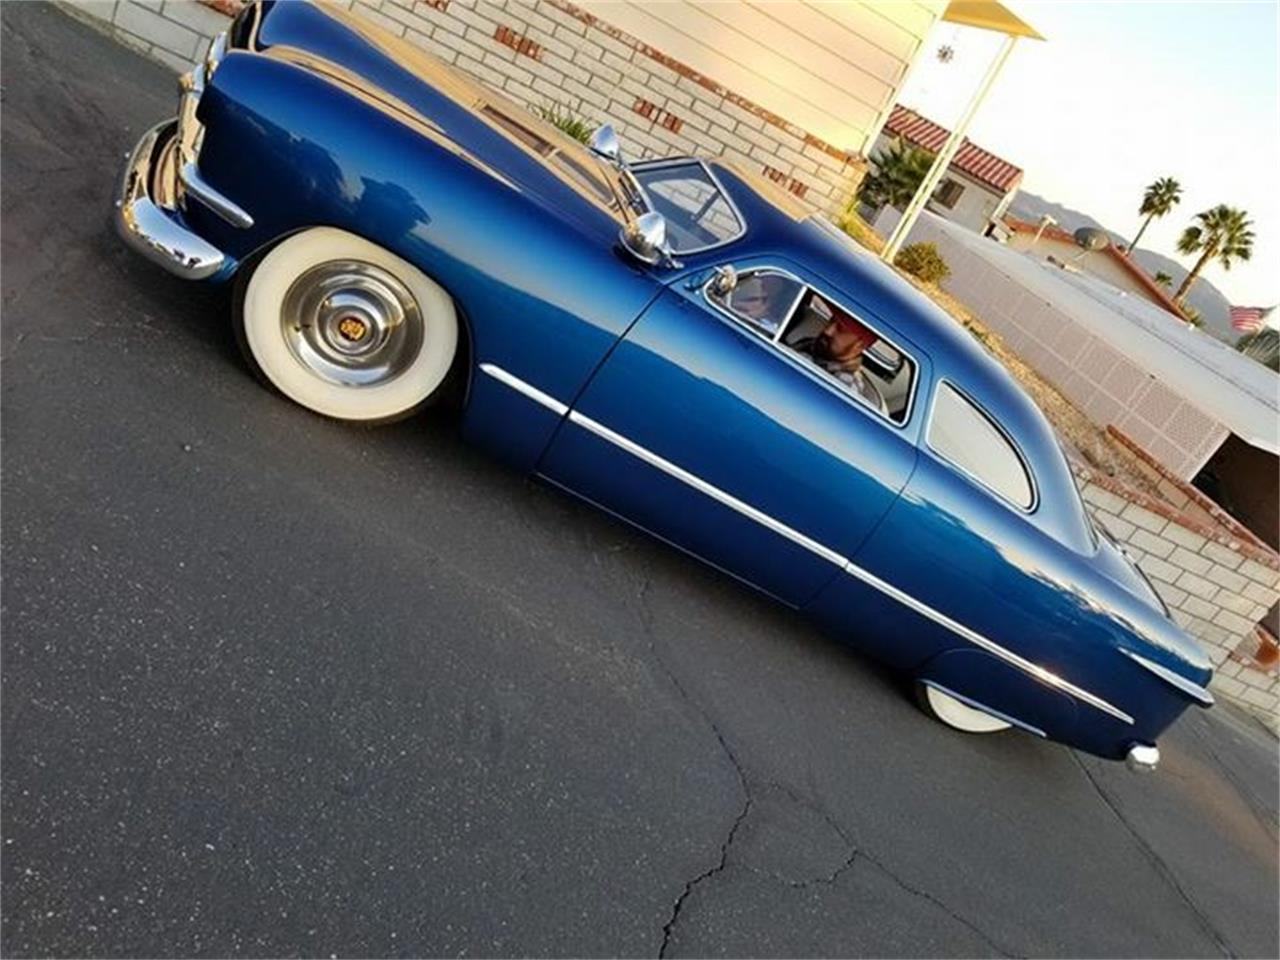 Large Picture of Classic 1950 Ford Tudor located in Temecula  California - $58,000.00 - PZ3K